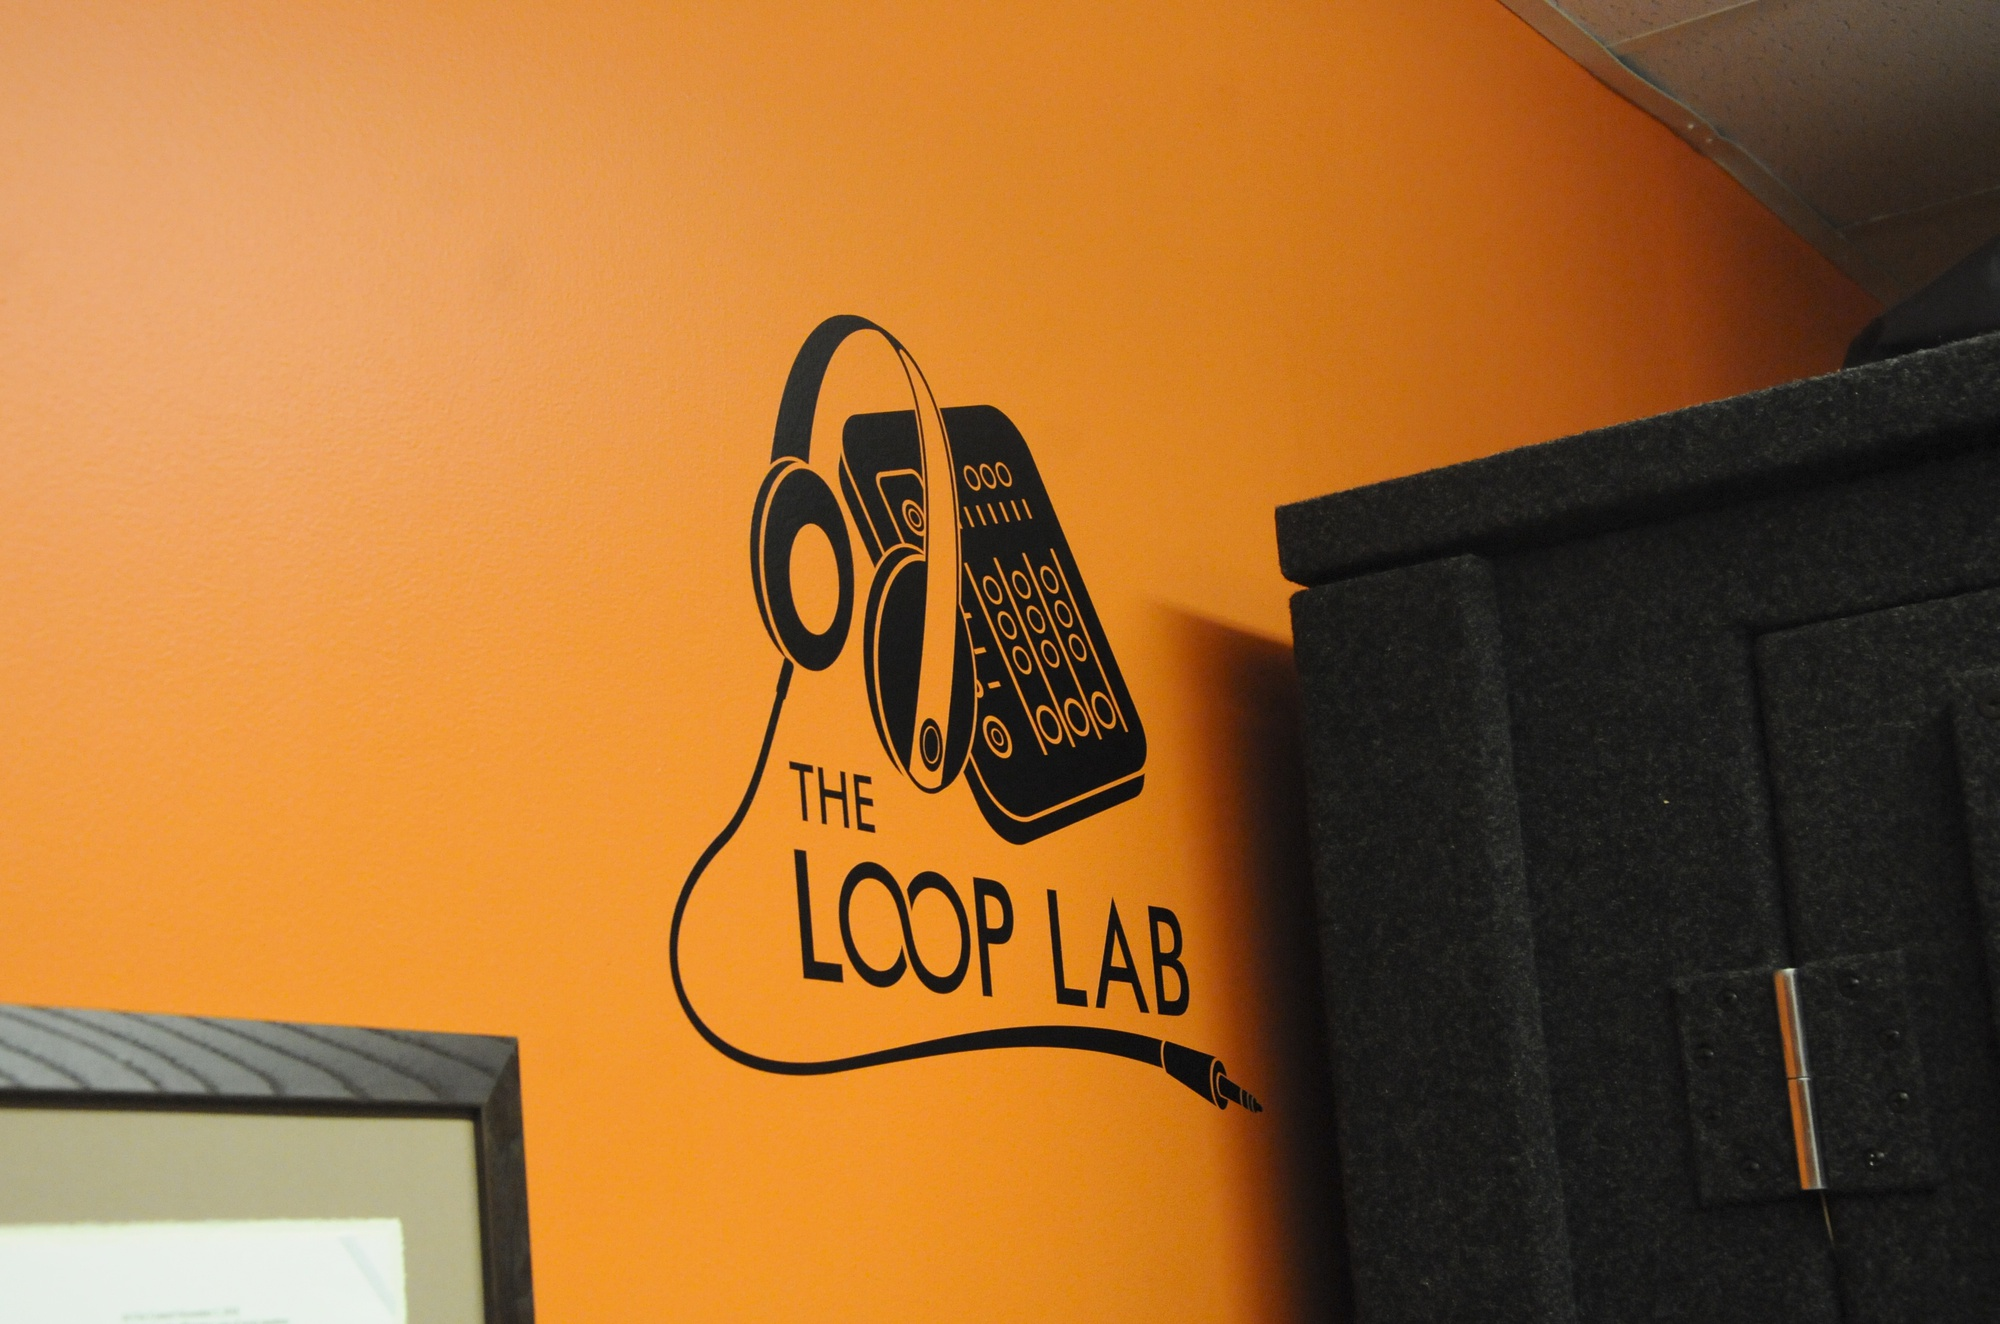 The Loop Lab is an eleven-month-old nonprofit founded for underrepresented youth to provide professional audio and video training.